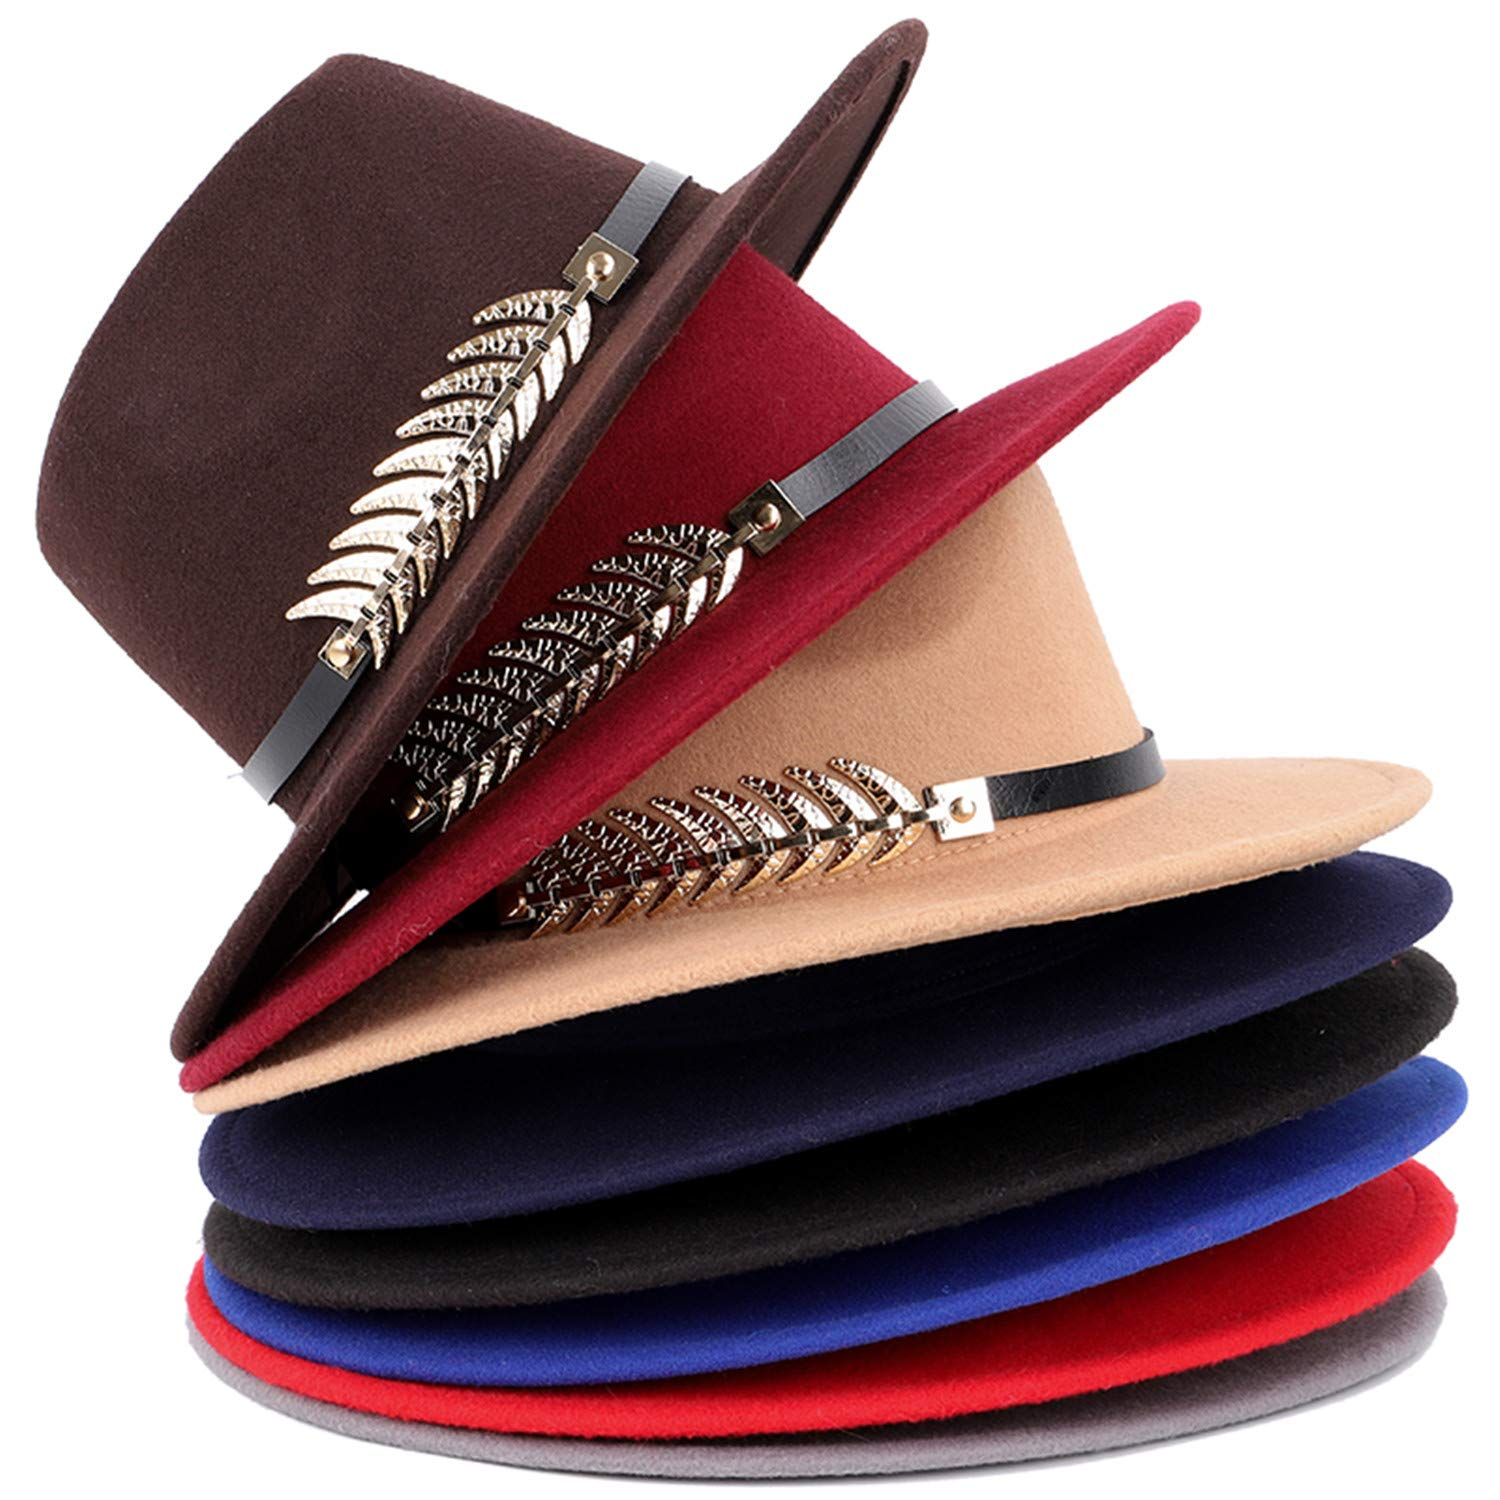 Zesoma Fashion Wool Wide Fedora Hat Winter Womans Hat Felt Hats Cylinder Bowler Hats,Red,OneSize